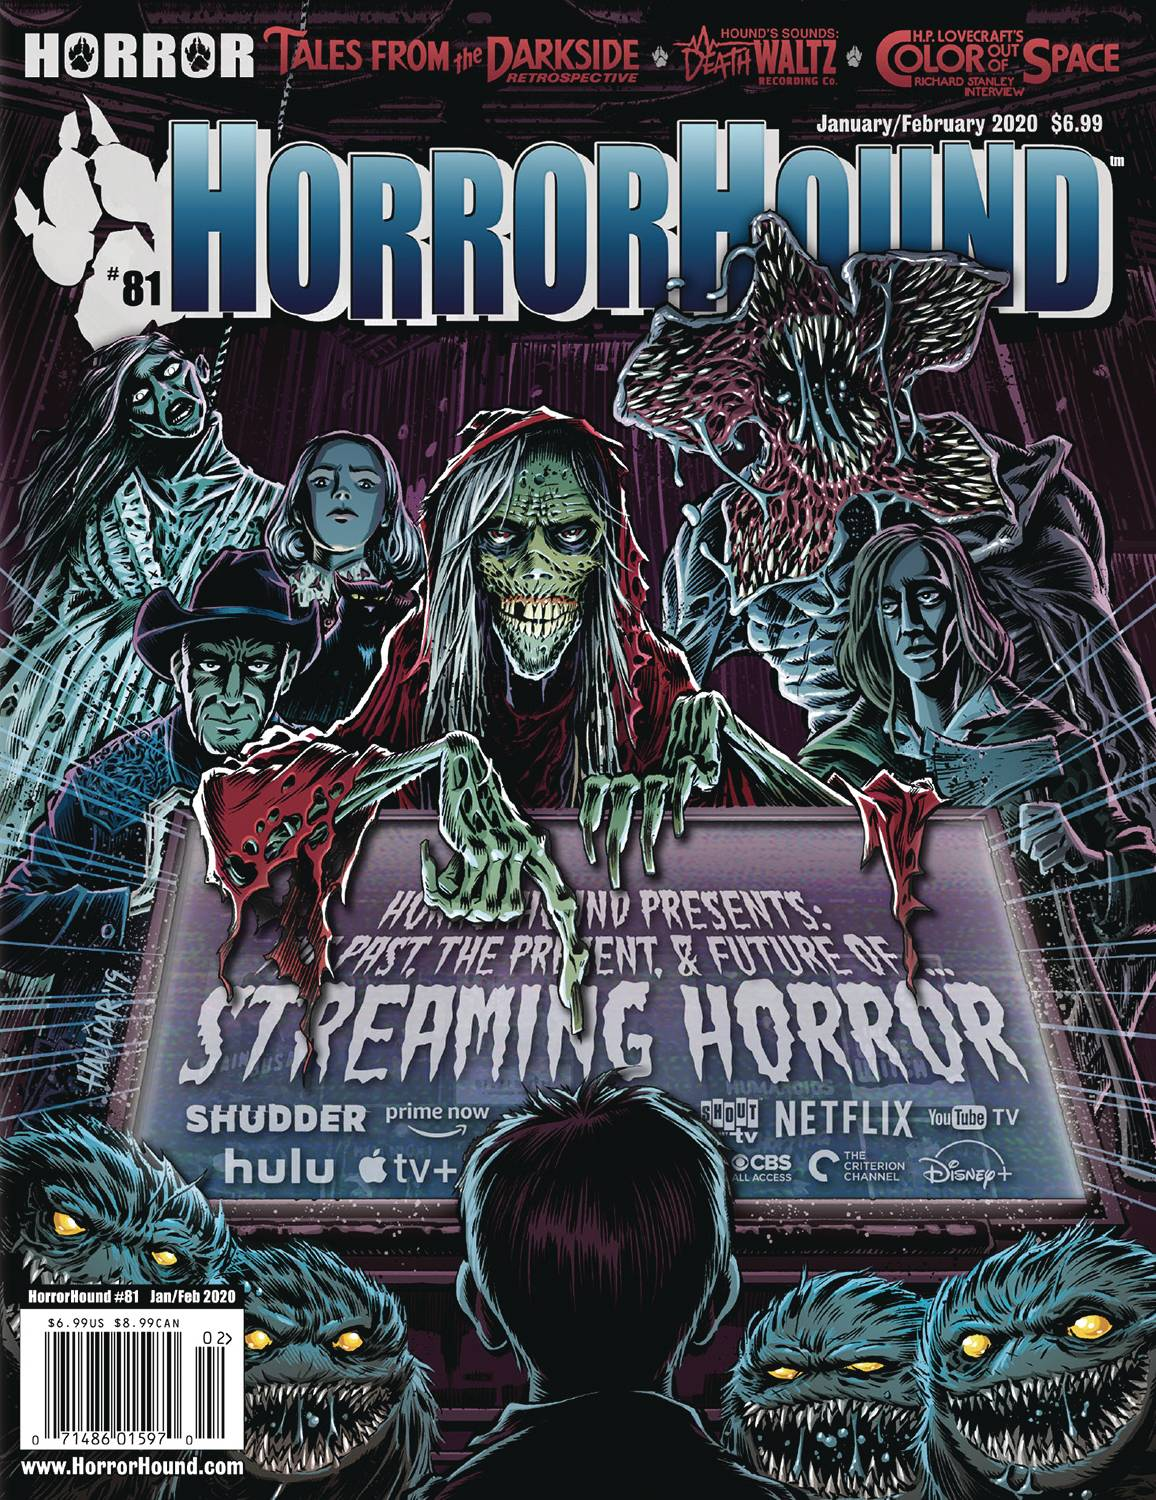 HORRORHOUND #83